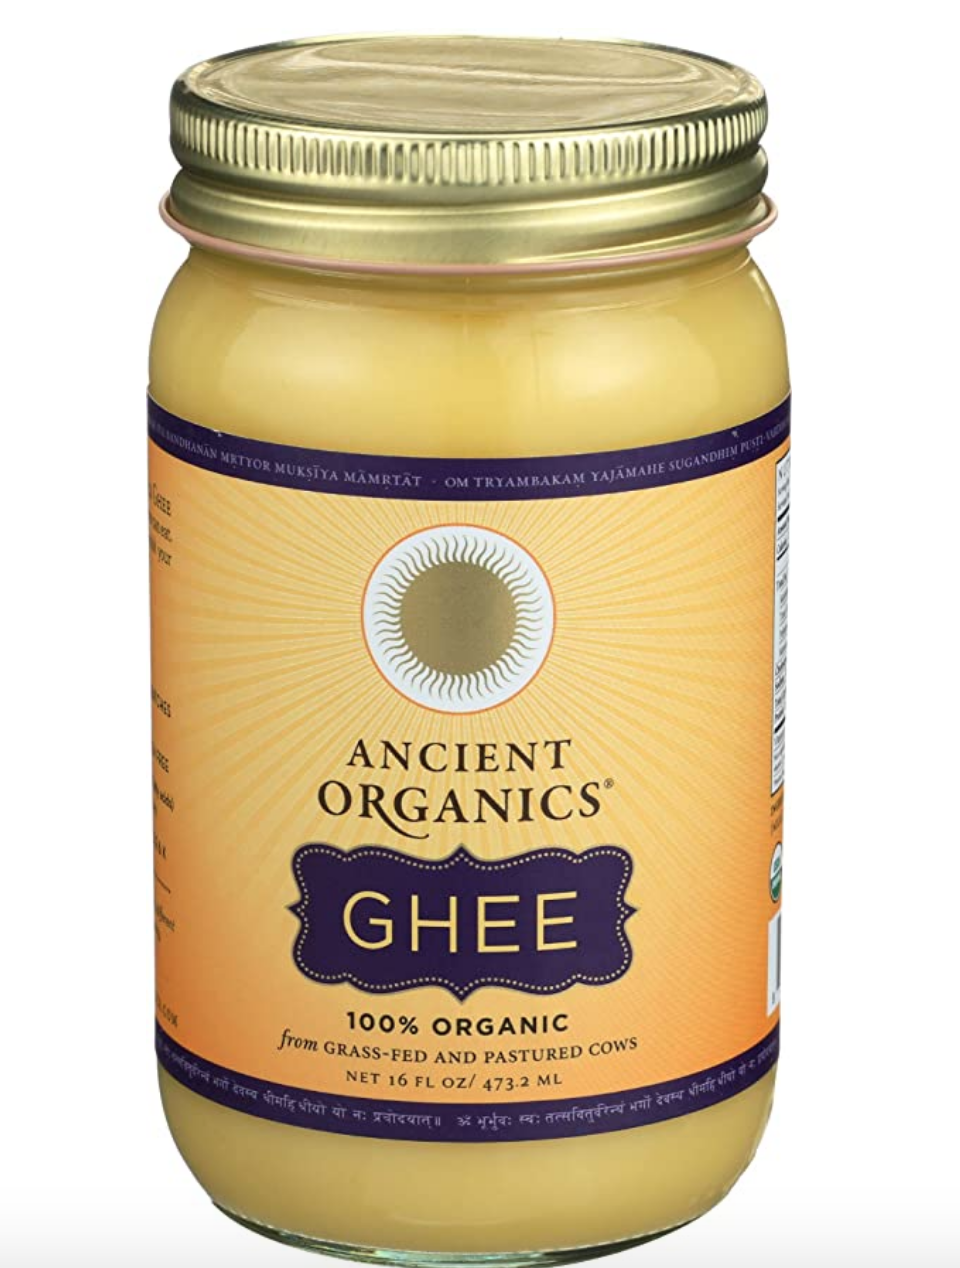 """<p><a class=""""link rapid-noclick-resp"""" href=""""https://www.amazon.com/ANCIENT-ORGANICS-100-Organic-Grass-fed/dp/B00DUFYQYS?ref_=ast_sto_dp&tag=syn-yahoo-20&ascsubtag=%5Bartid%7C1782.g.22559891%5Bsrc%7Cyahoo-us"""" rel=""""nofollow noopener"""" target=""""_blank"""" data-ylk=""""slk:BUY NOW"""">BUY NOW</a></p><p>A super niche product, but one that certain people would die for. Whole Foods has been on the <a href=""""https://www.instacart.com/whole-foods/products/174608-ancient-organics-ghee-8-fl-oz"""" rel=""""nofollow noopener"""" target=""""_blank"""" data-ylk=""""slk:ghee"""" class=""""link rapid-noclick-resp"""">ghee</a> beat for awhile now.</p>"""